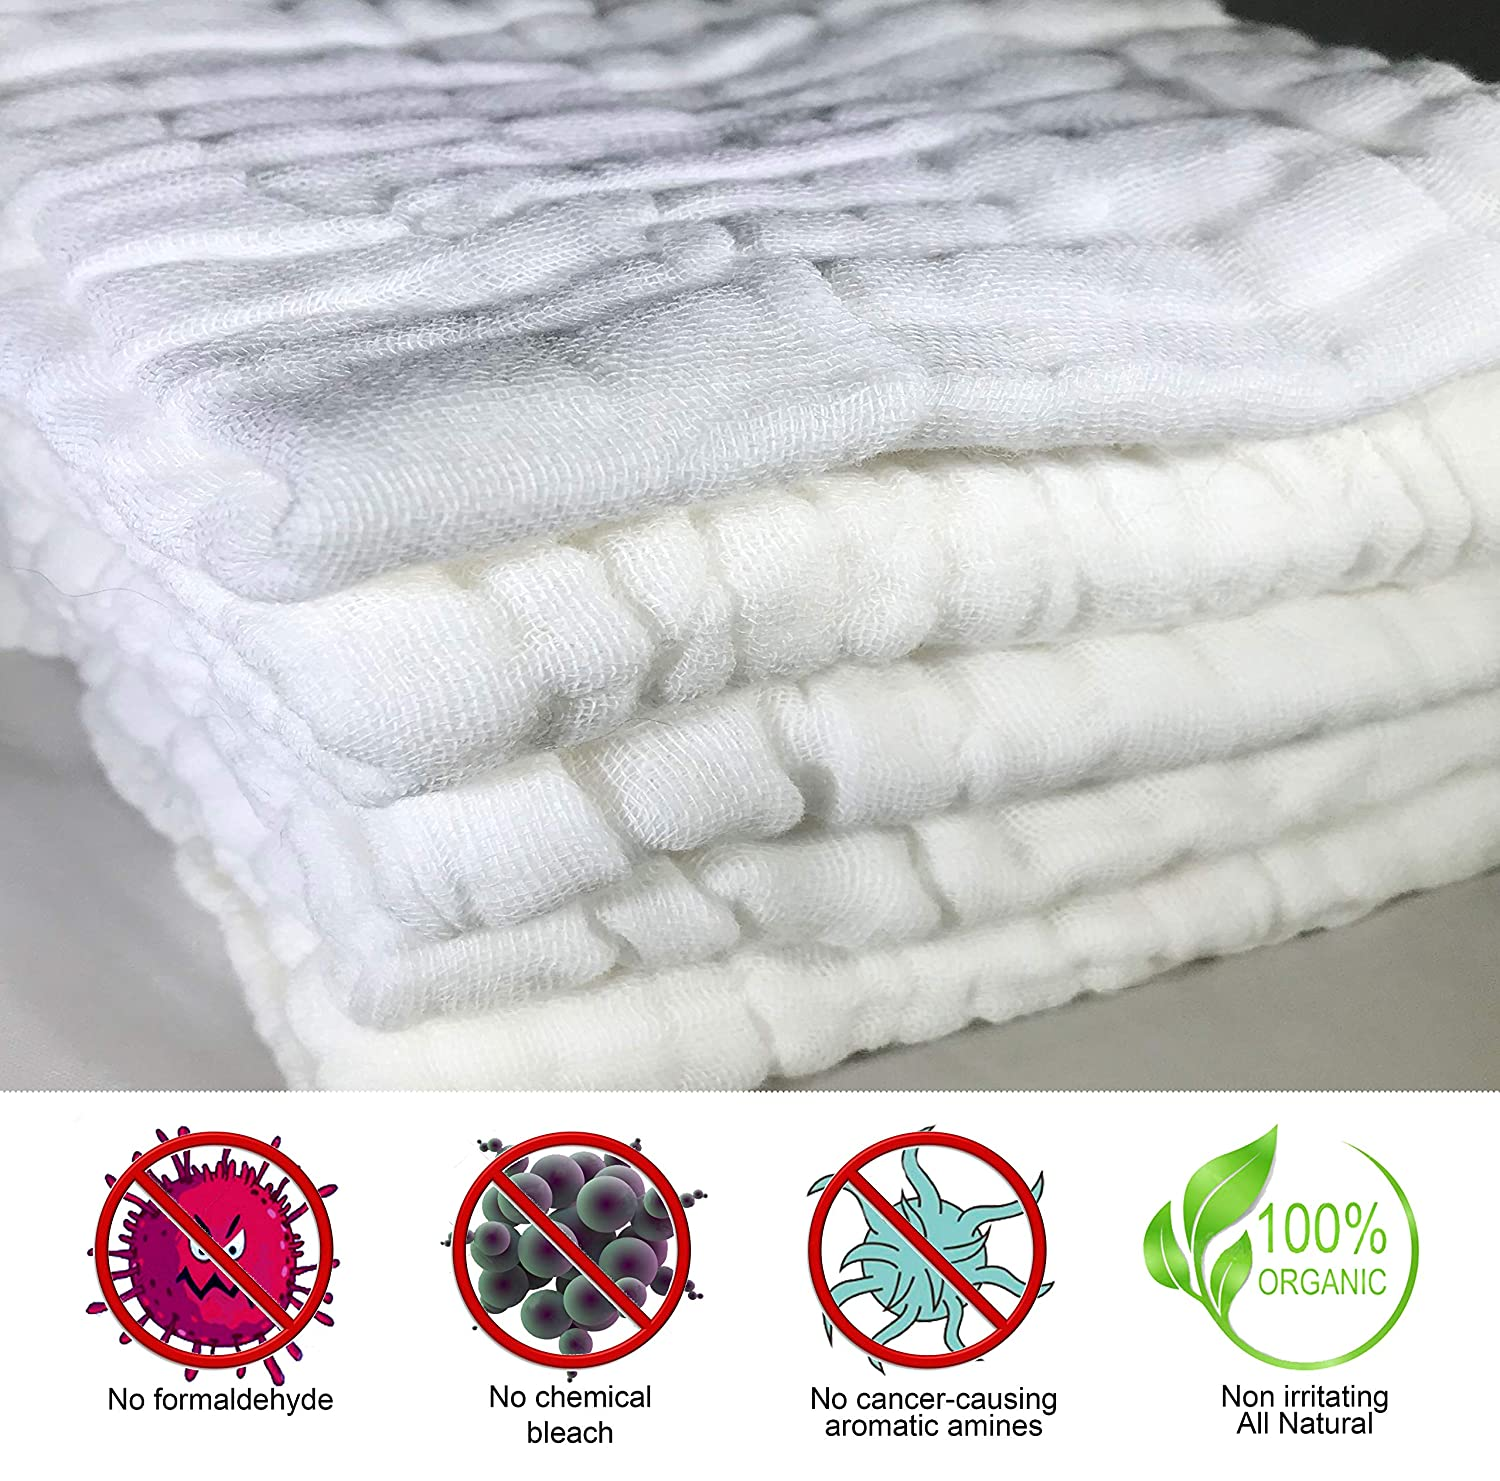 Amazon.com : Baby Muslin White Washcloths and Towels - 100% Organic Natural Cotton Baby Wipes - Premium Extra Soft Newborn Baby Face Towels for Sensitive ...